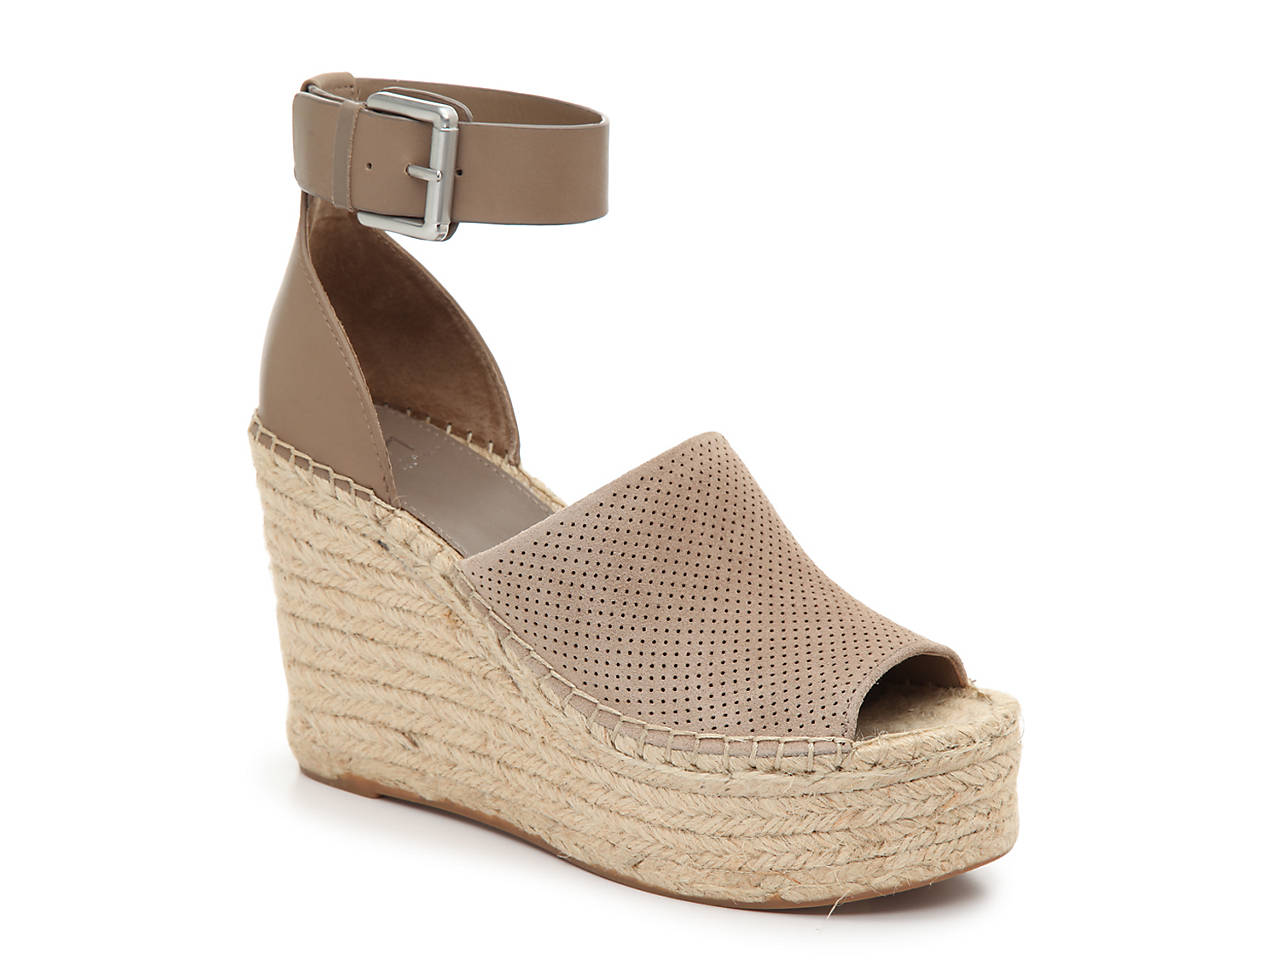 e533edfa8cb08c Marc Fisher Adalyne Espadrille Wedge Sandal Women s Shoes